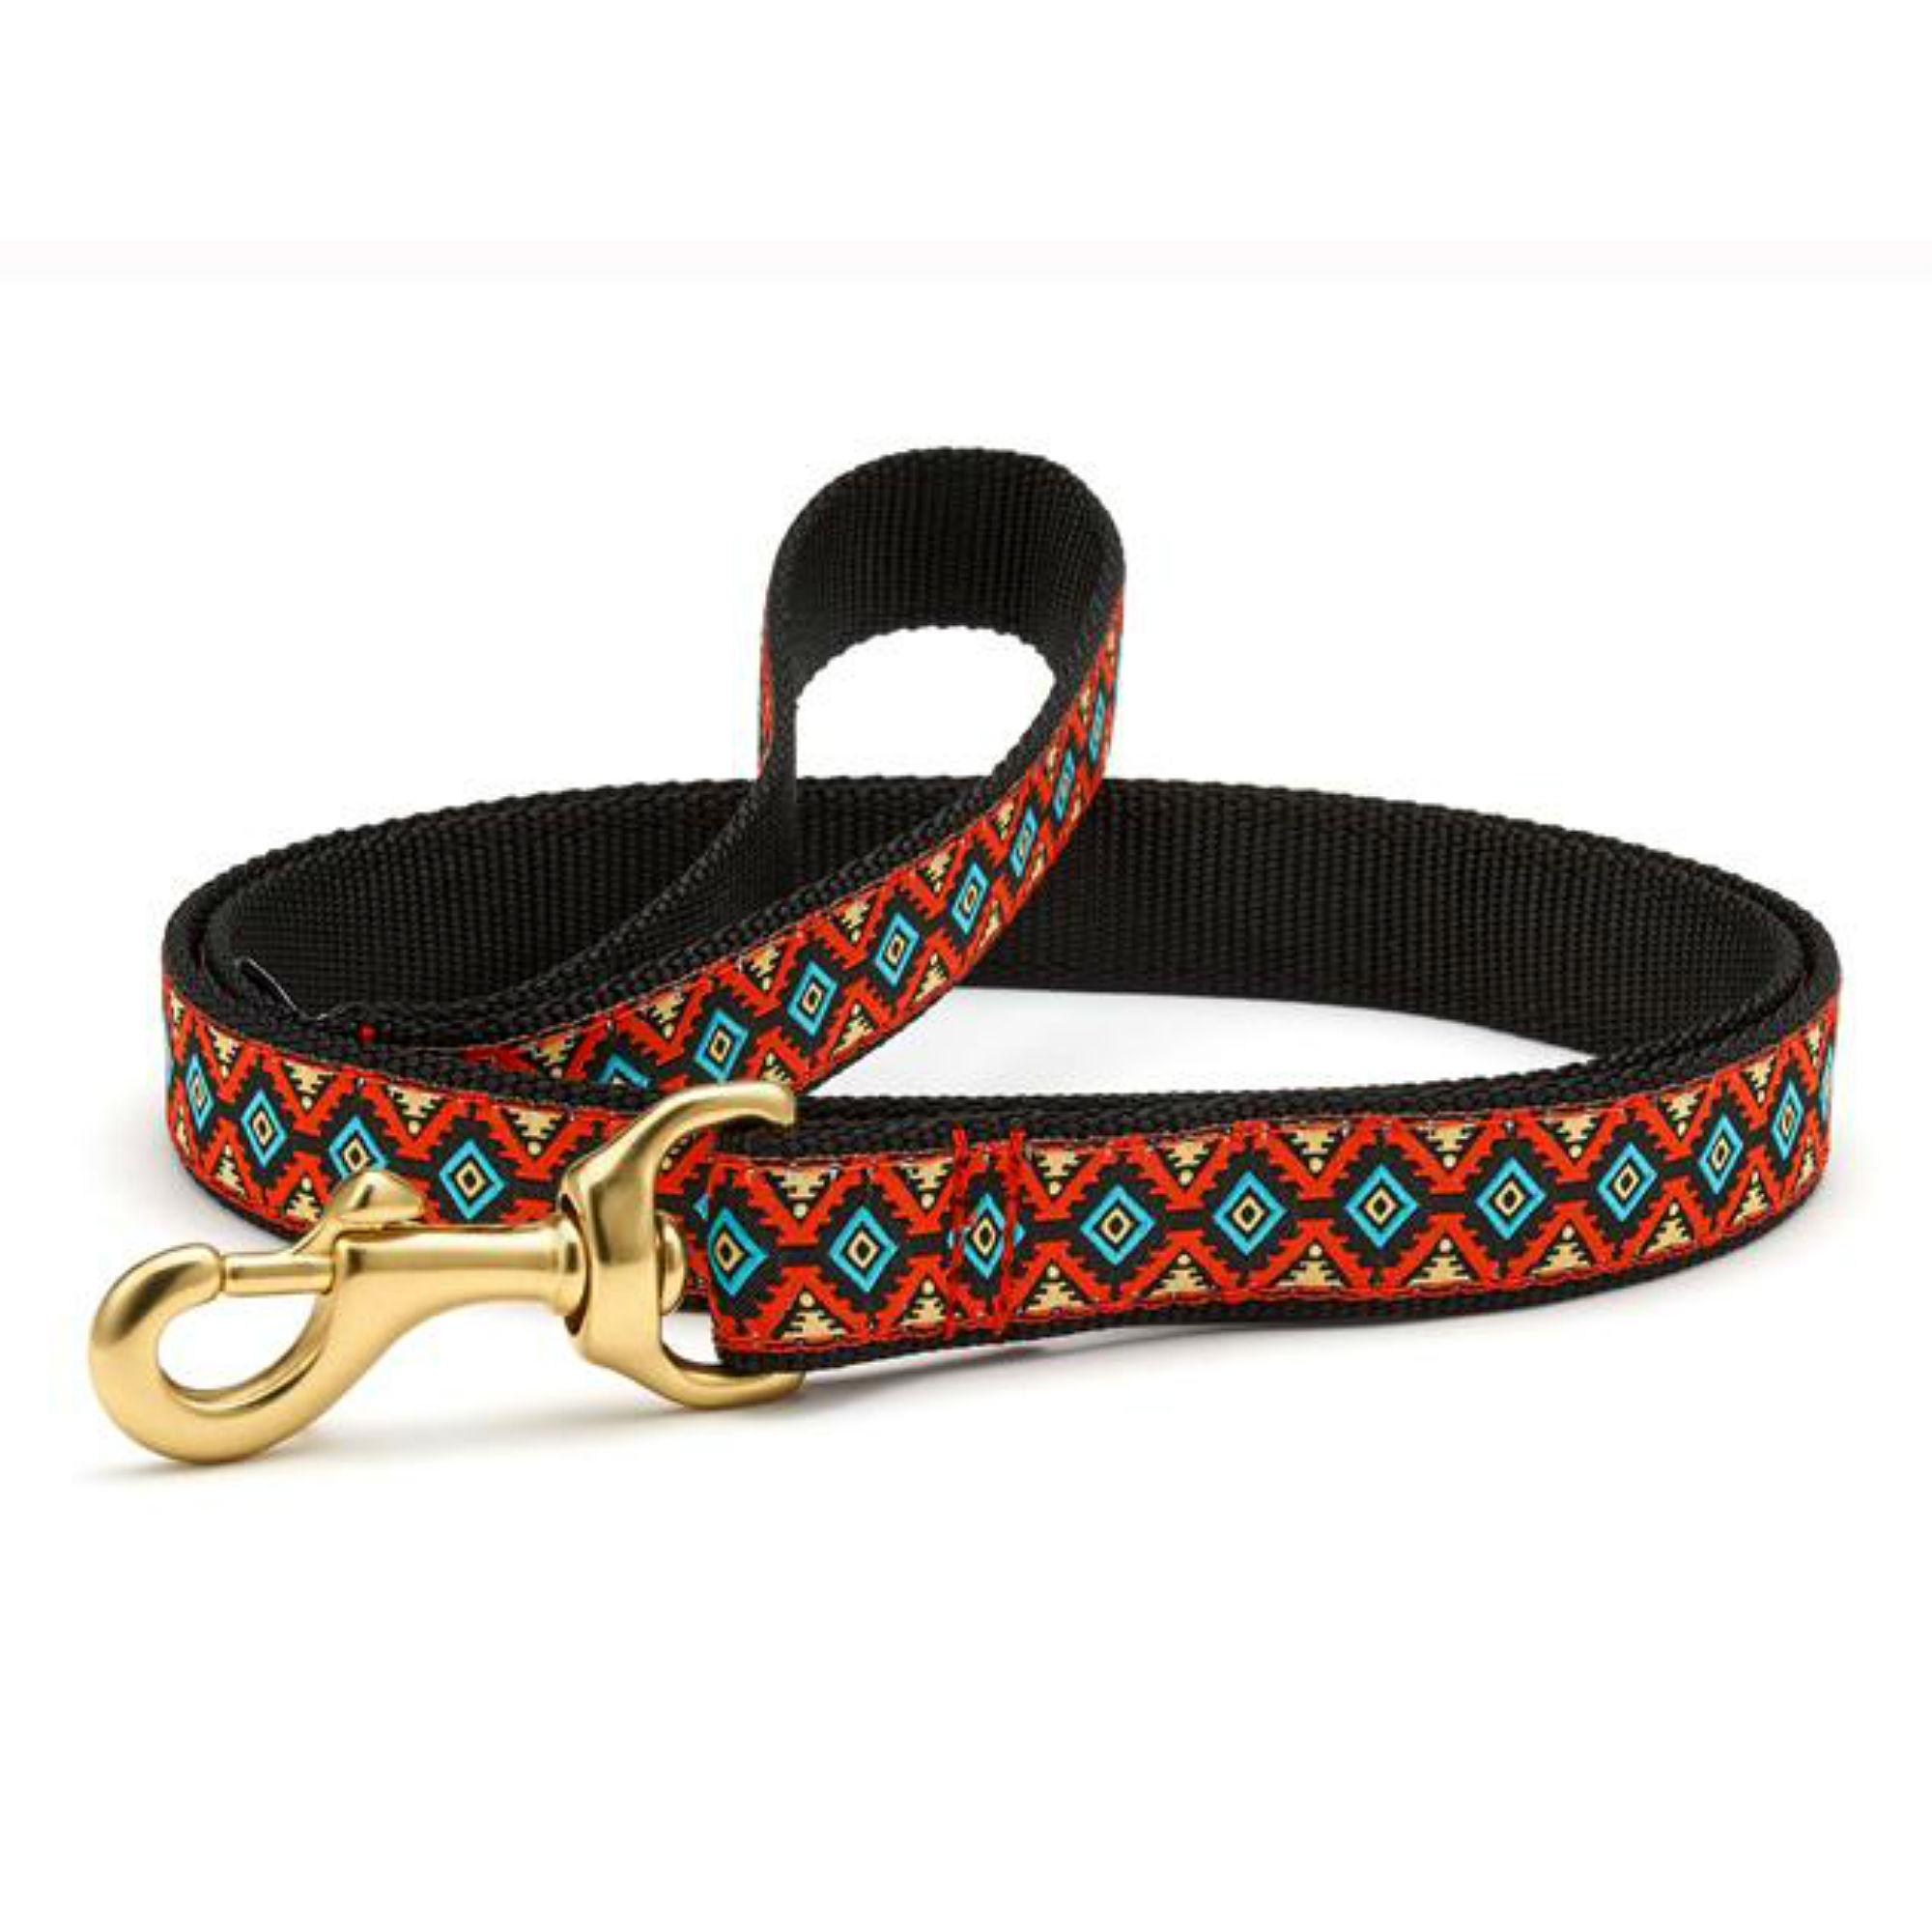 Santa Fe Dog Leash by Up Country